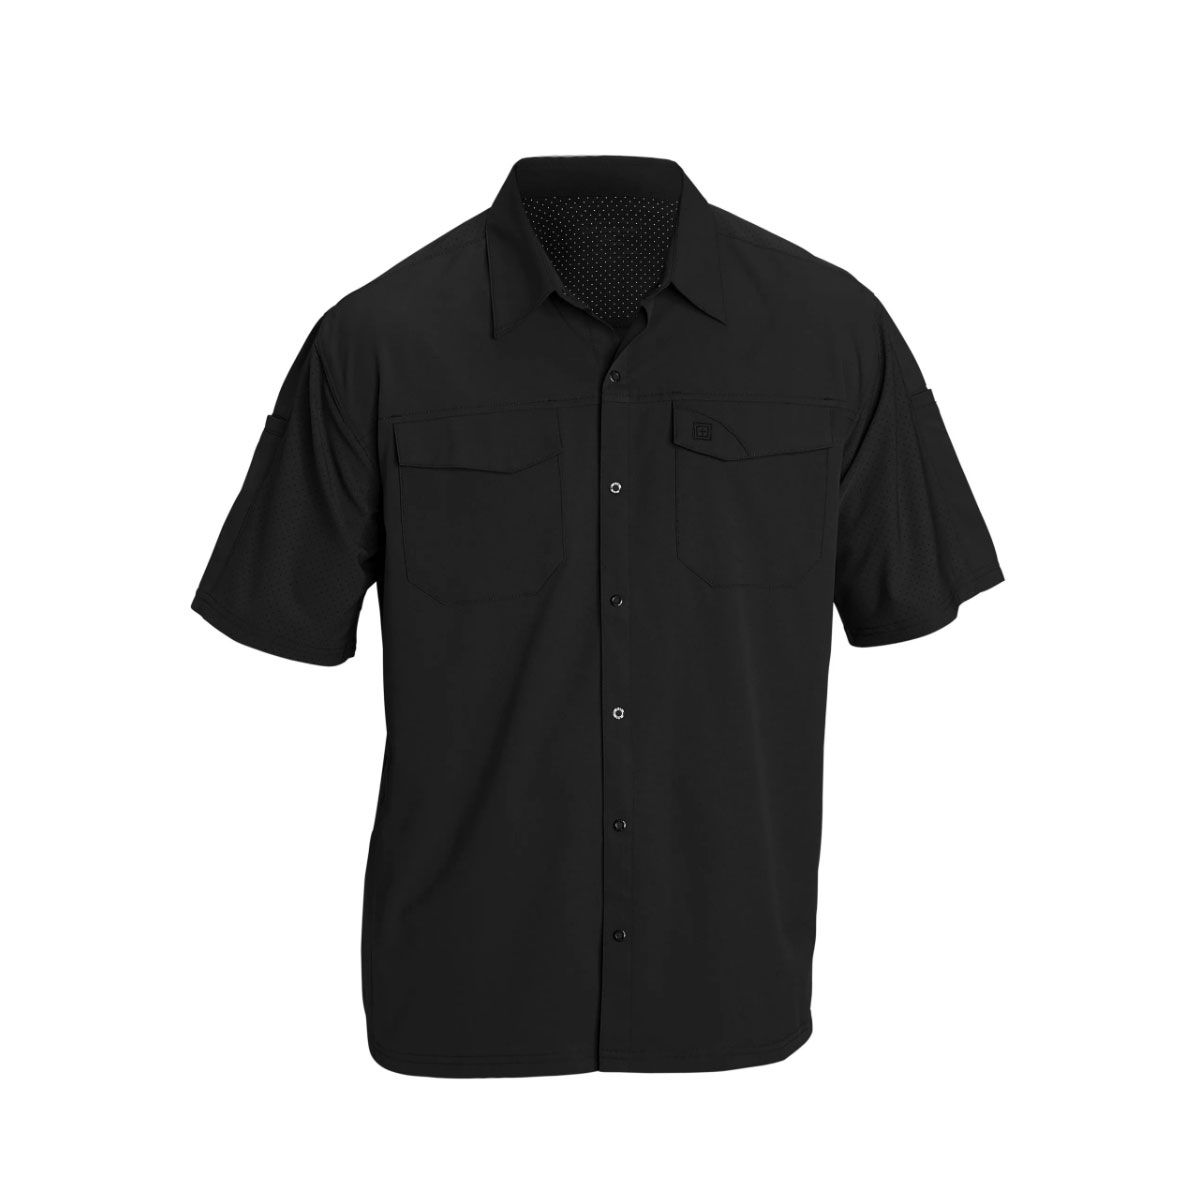 Camisa 5.11 Tactical Masc Manga Curta Freedom Flex Black